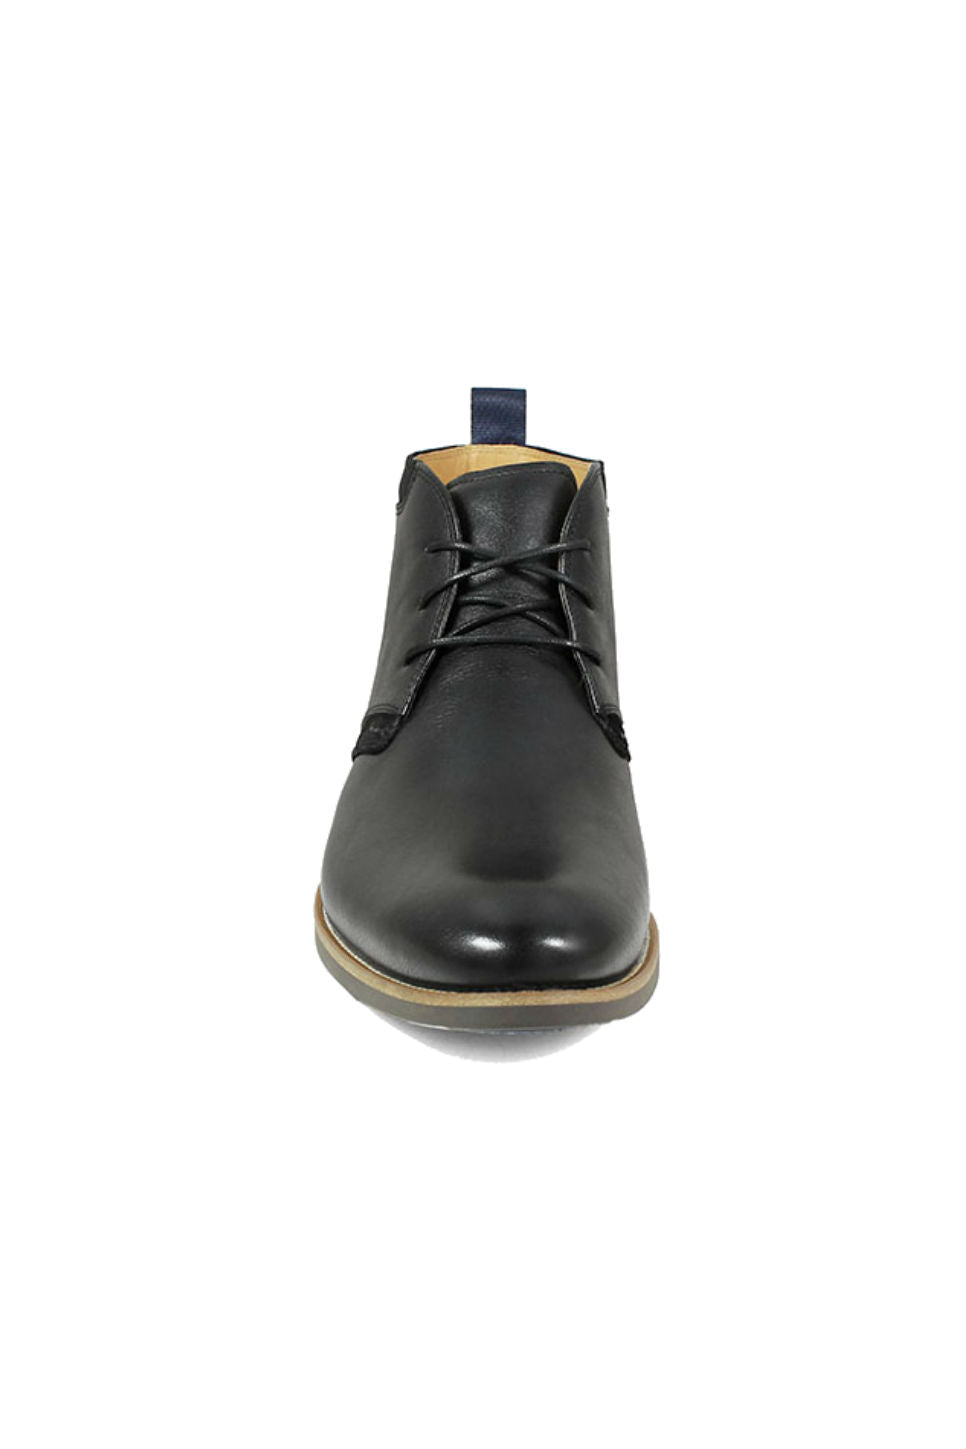 UPTOWN PLAIN TOE CHUKKA - BLACK